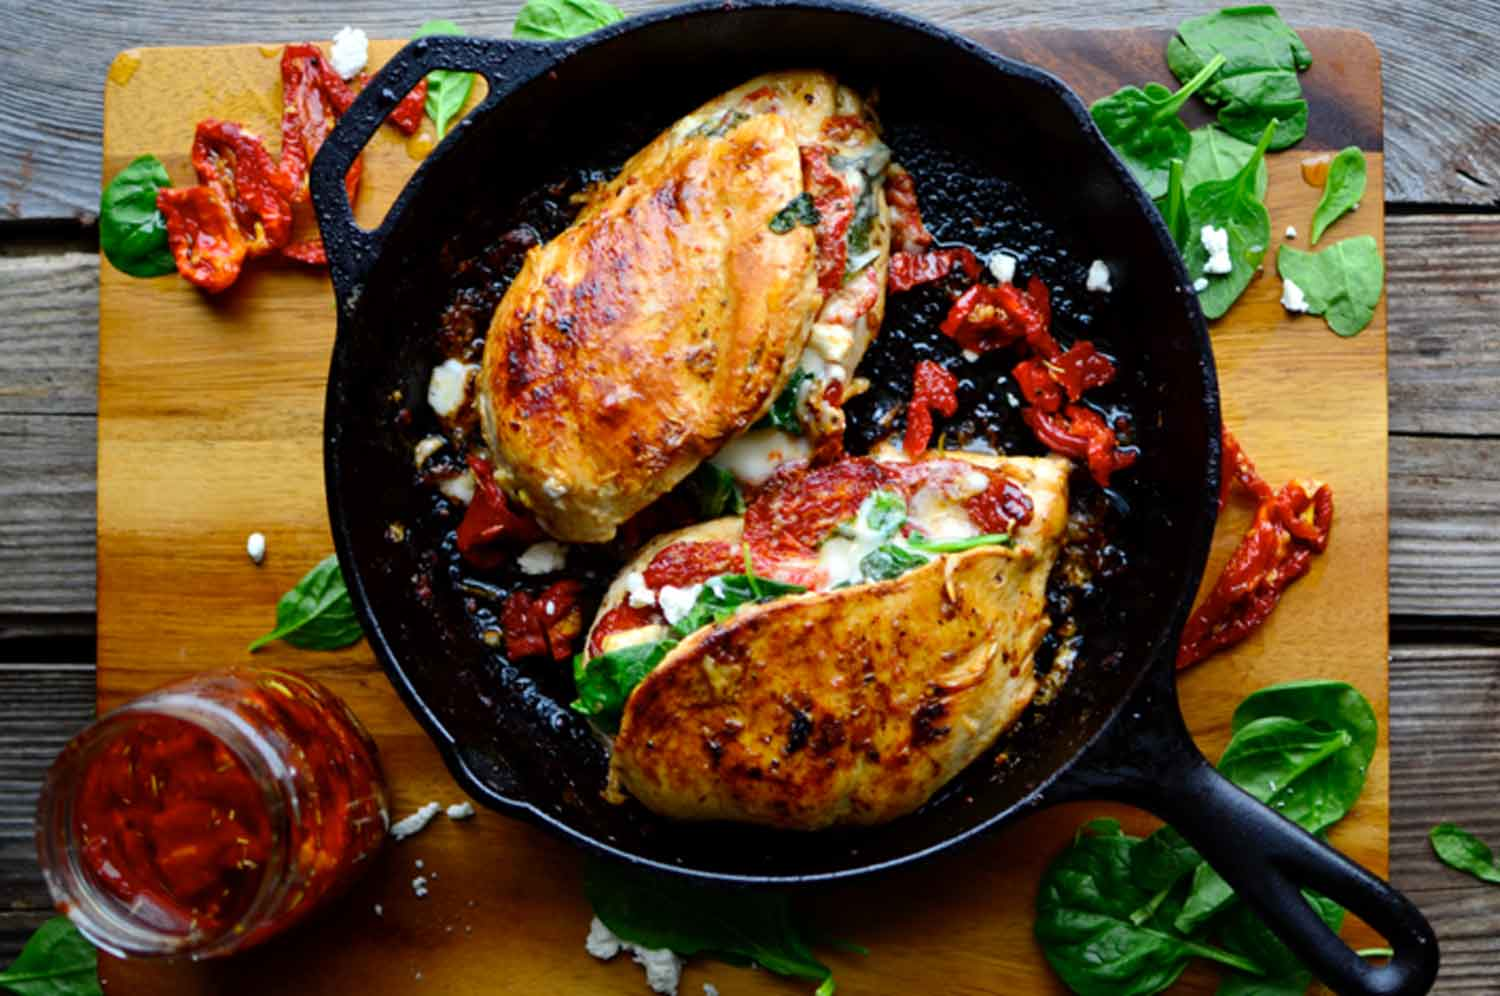 Sundried Tomato, Spinach, and Cheese Stuffed Chicken